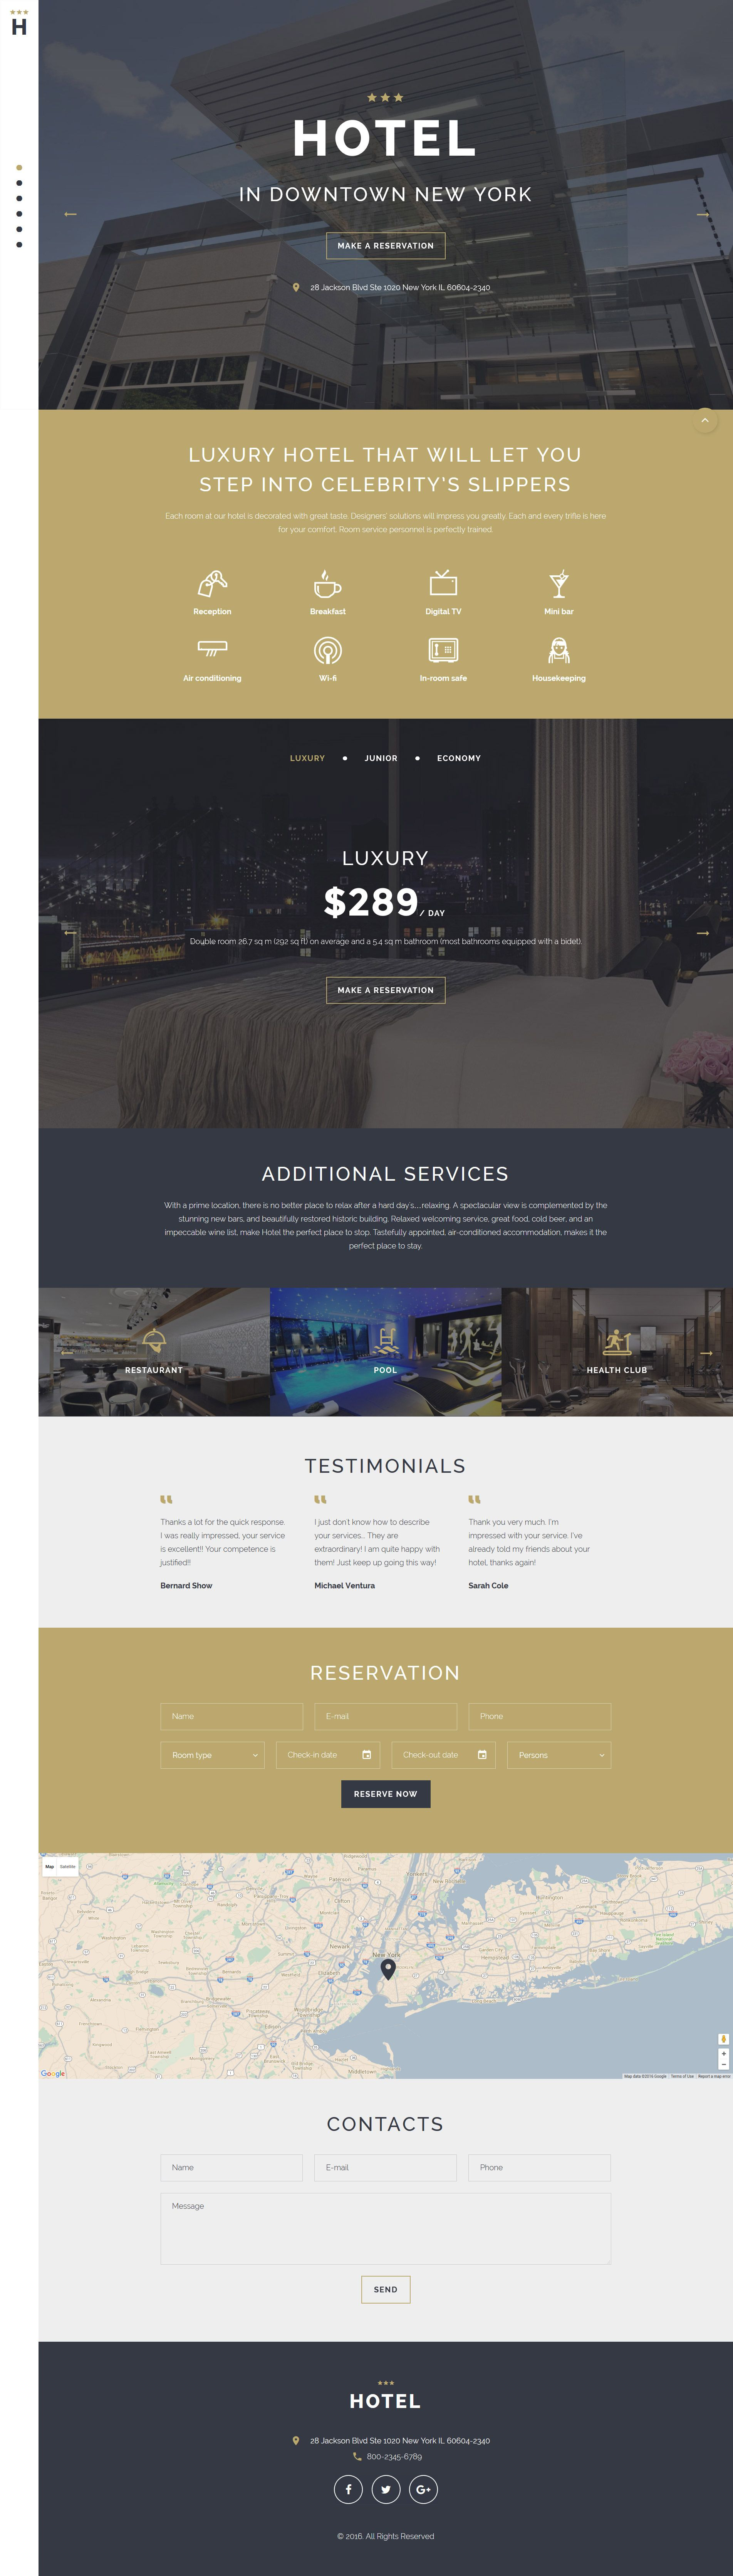 Hotels Responsive Landing Page Template | Template, Website and ...